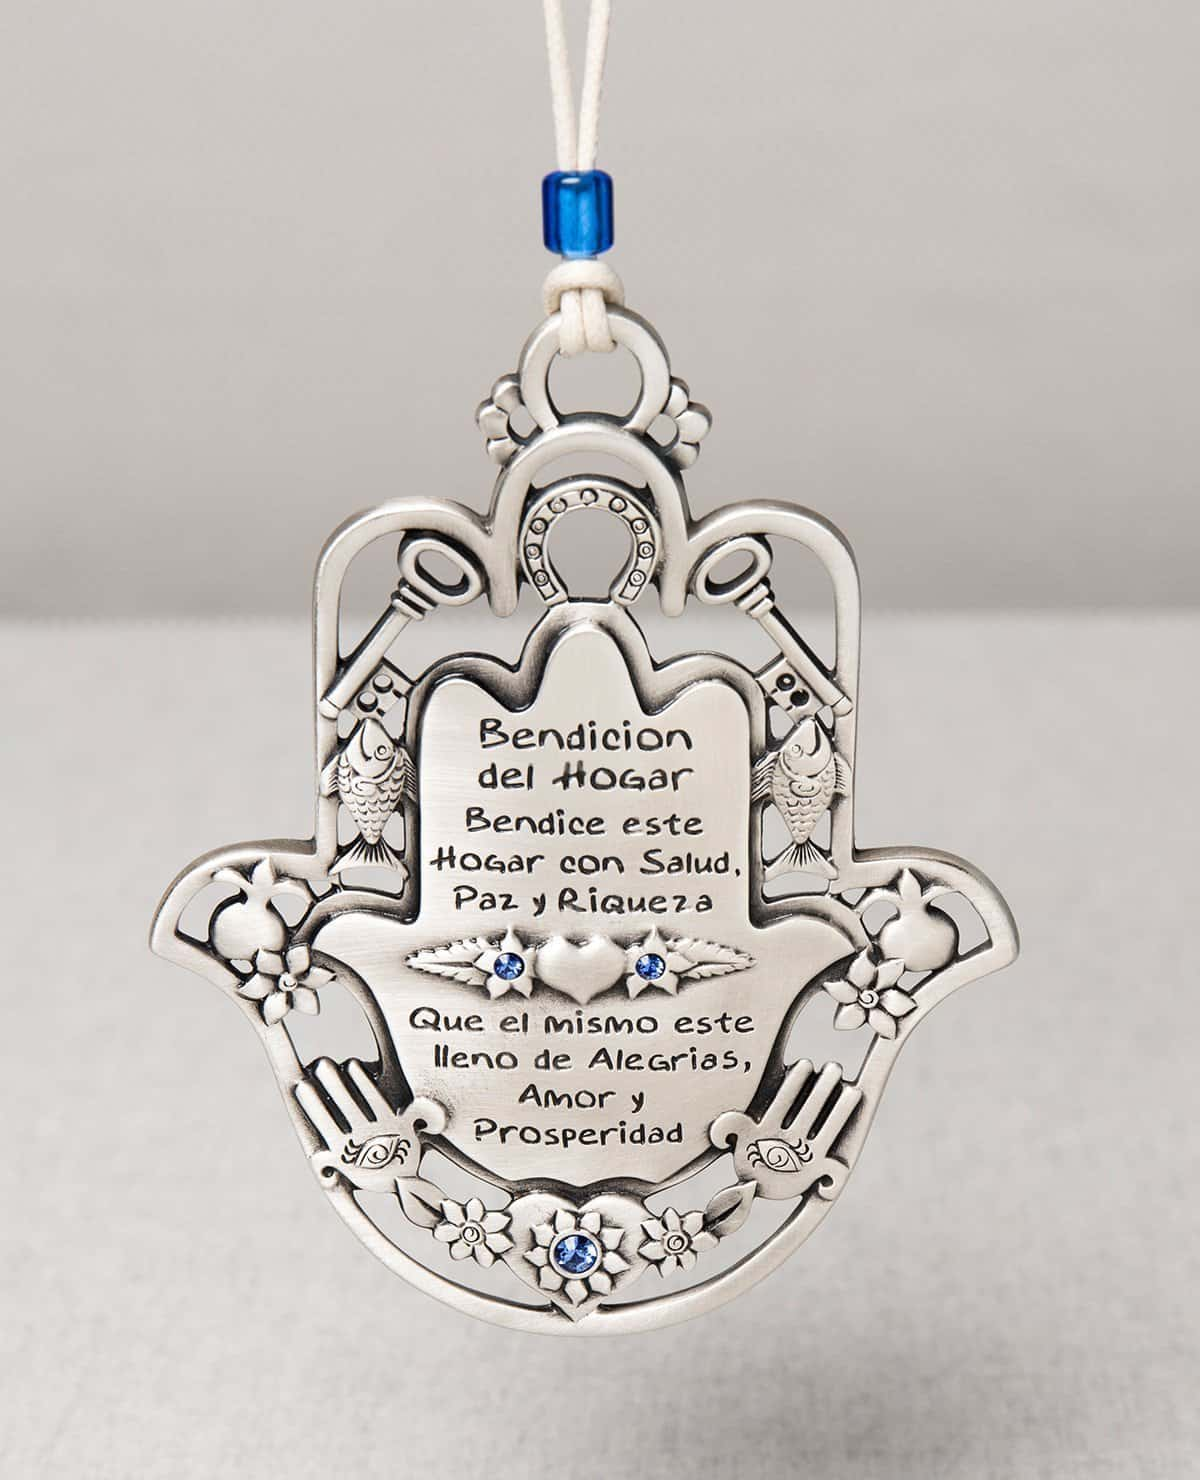 Home Blessing Hamsa with Motifs - Spanish